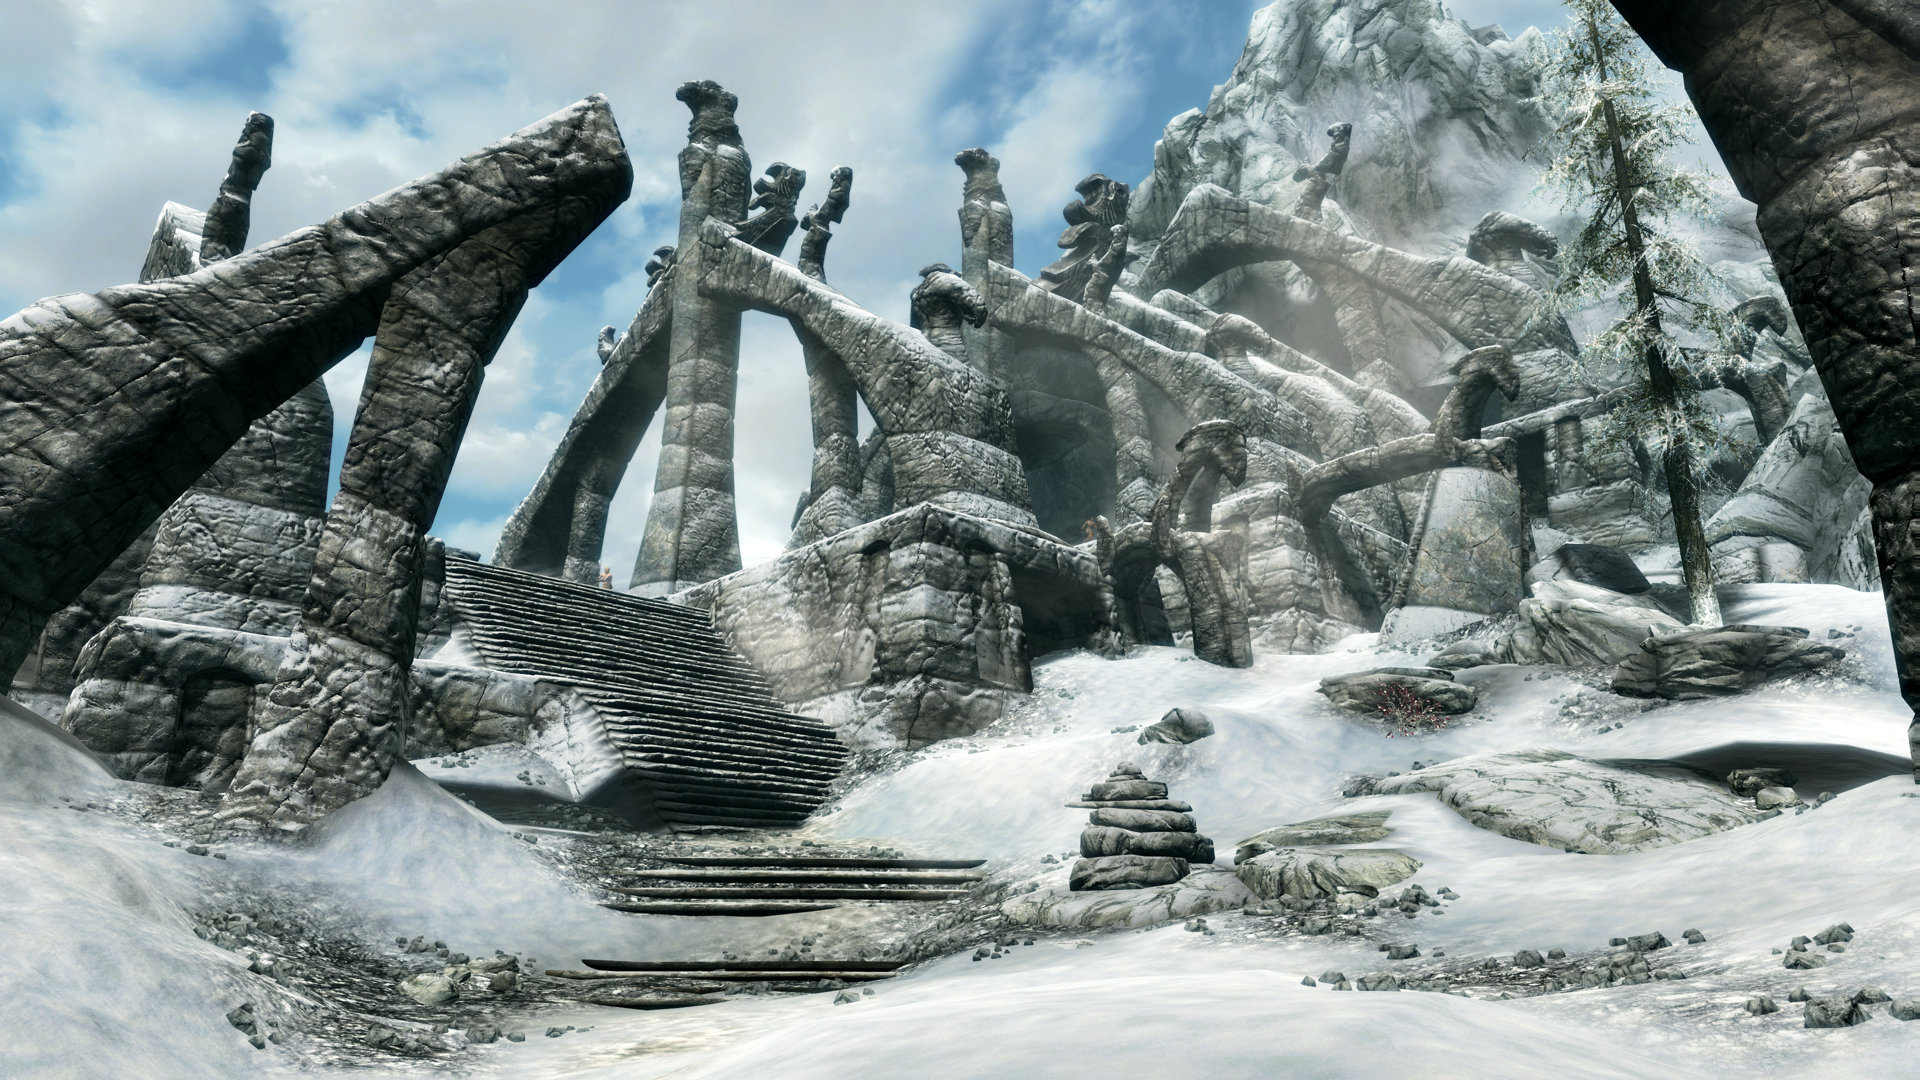 skyrim-special-edition-bleak-falls-barrow-screen-01-ps4-us-21oct16